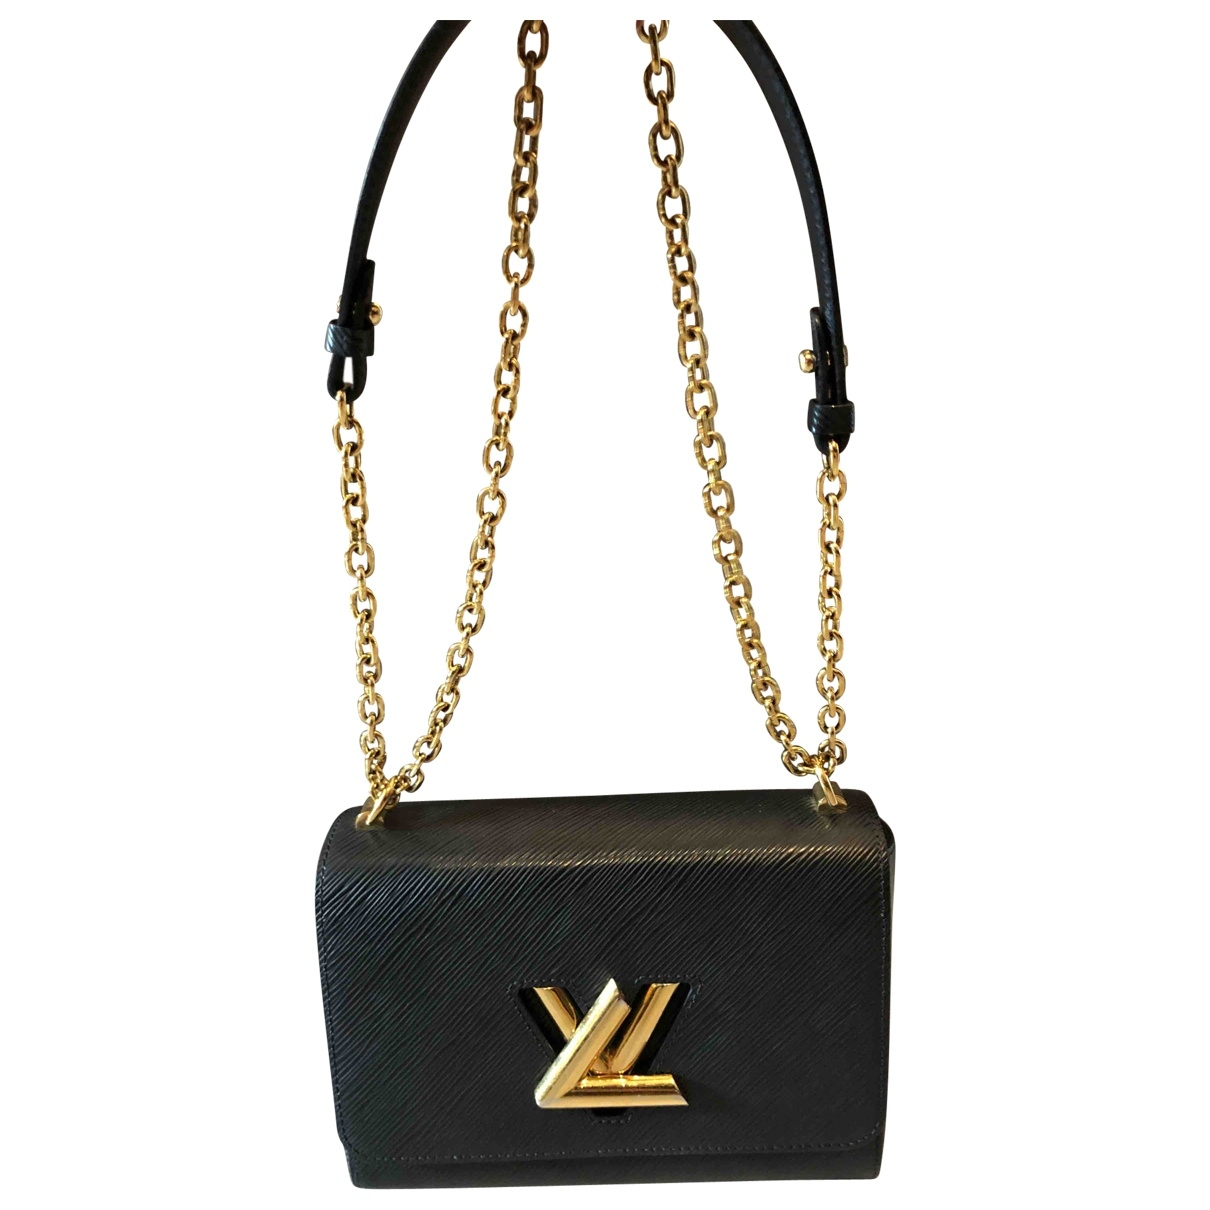 Louis Vuitton Twist Handtasche in  Schwarz Leder